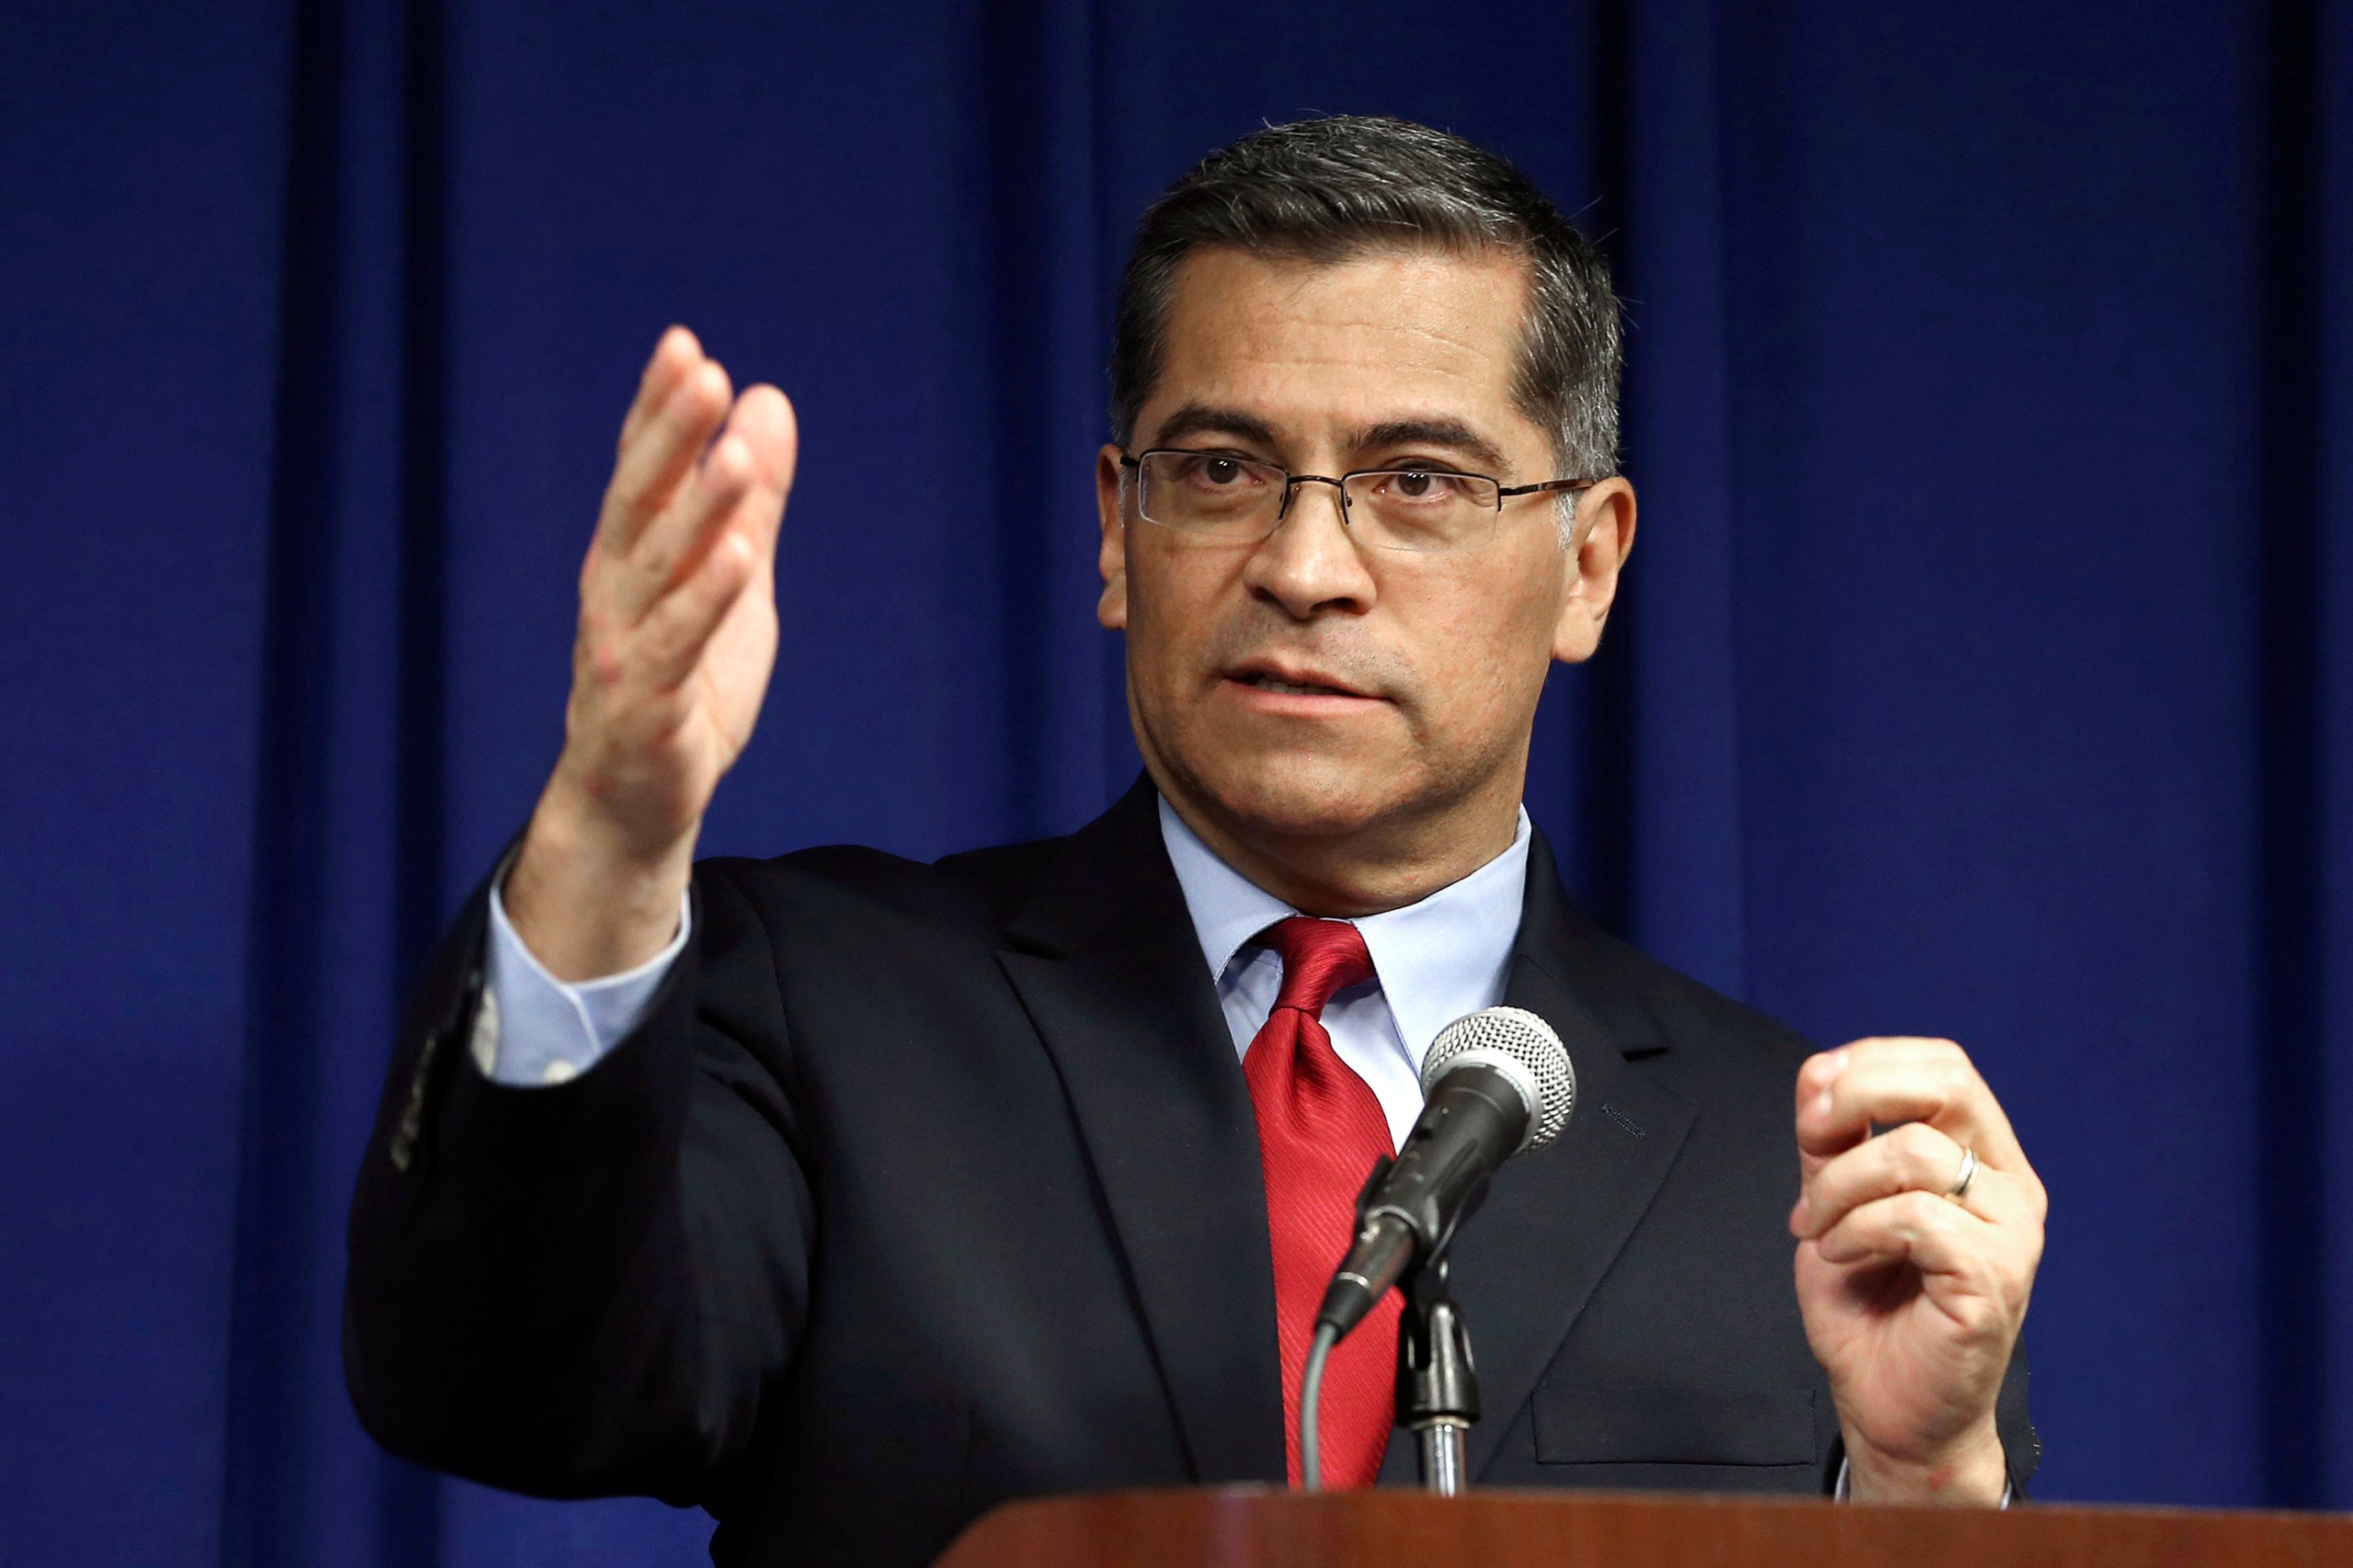 Joe Biden Nominee Xavier Becerra Could Be the Most Pro-Abortion HHS Secretary Ever